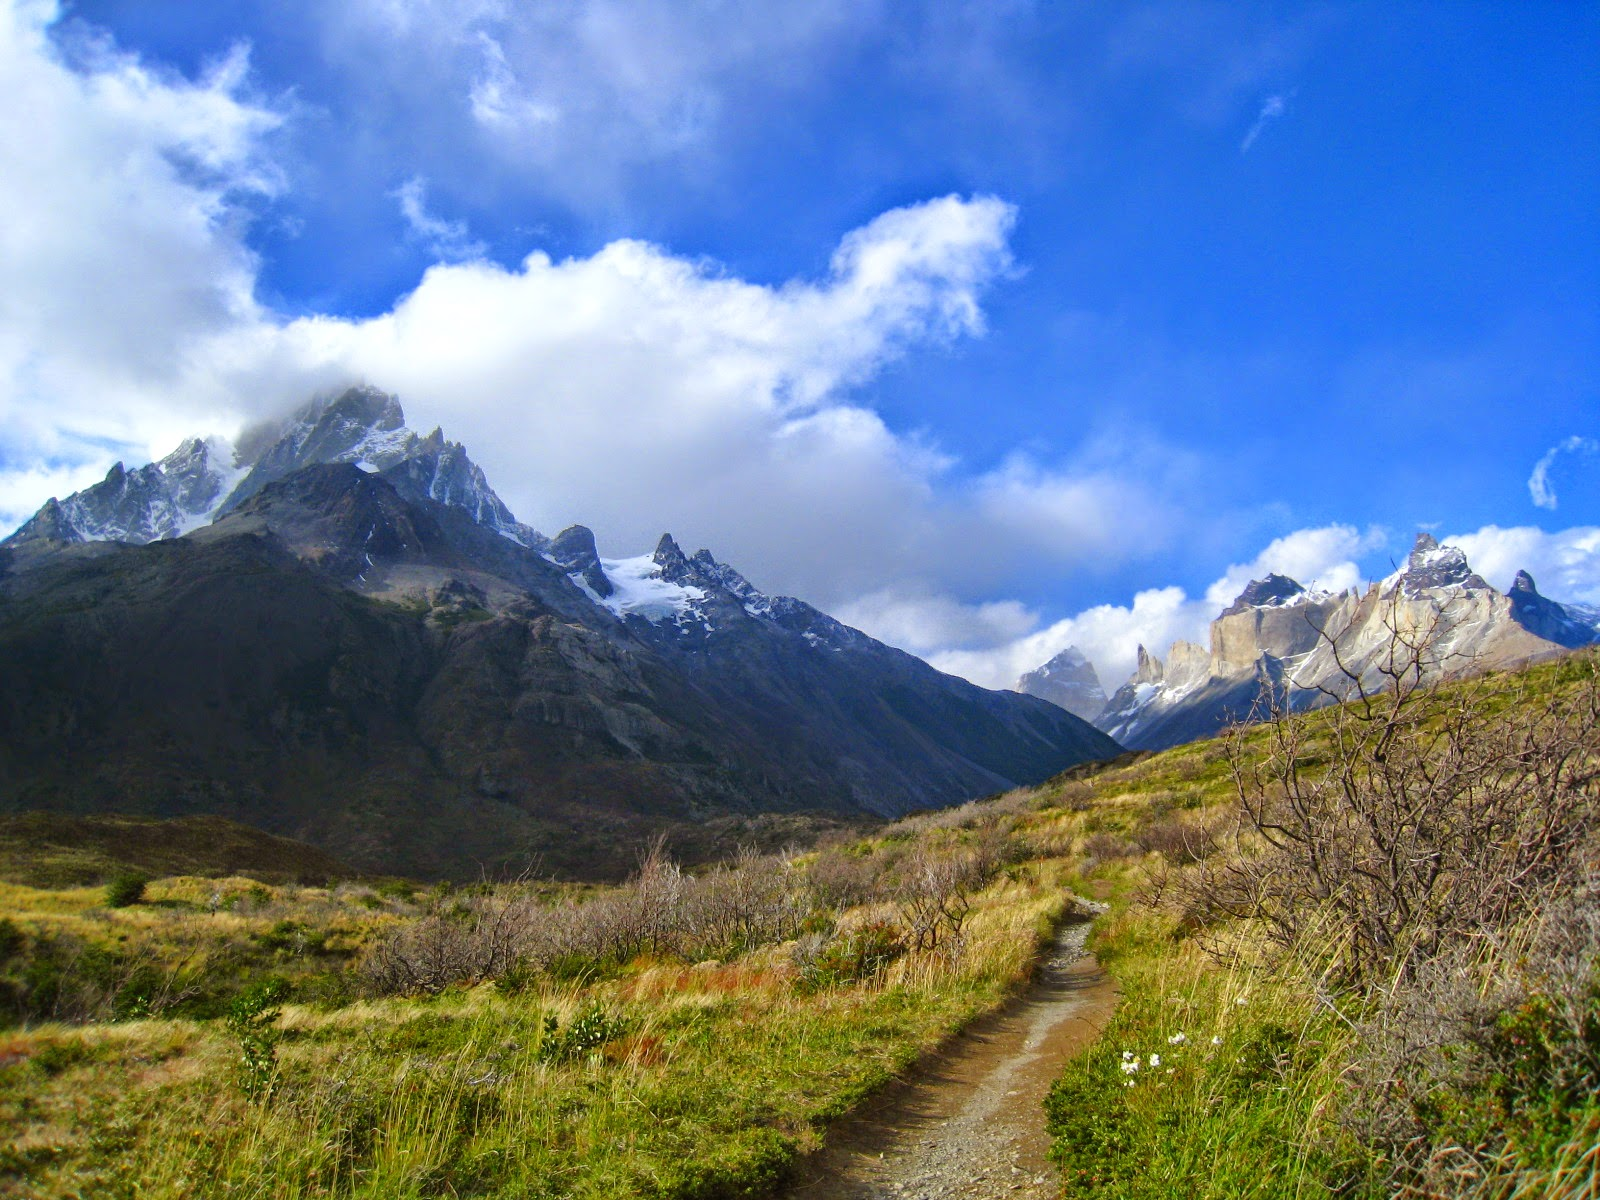 Photo taken while adventuring through Torres del Paine in Patagonia.